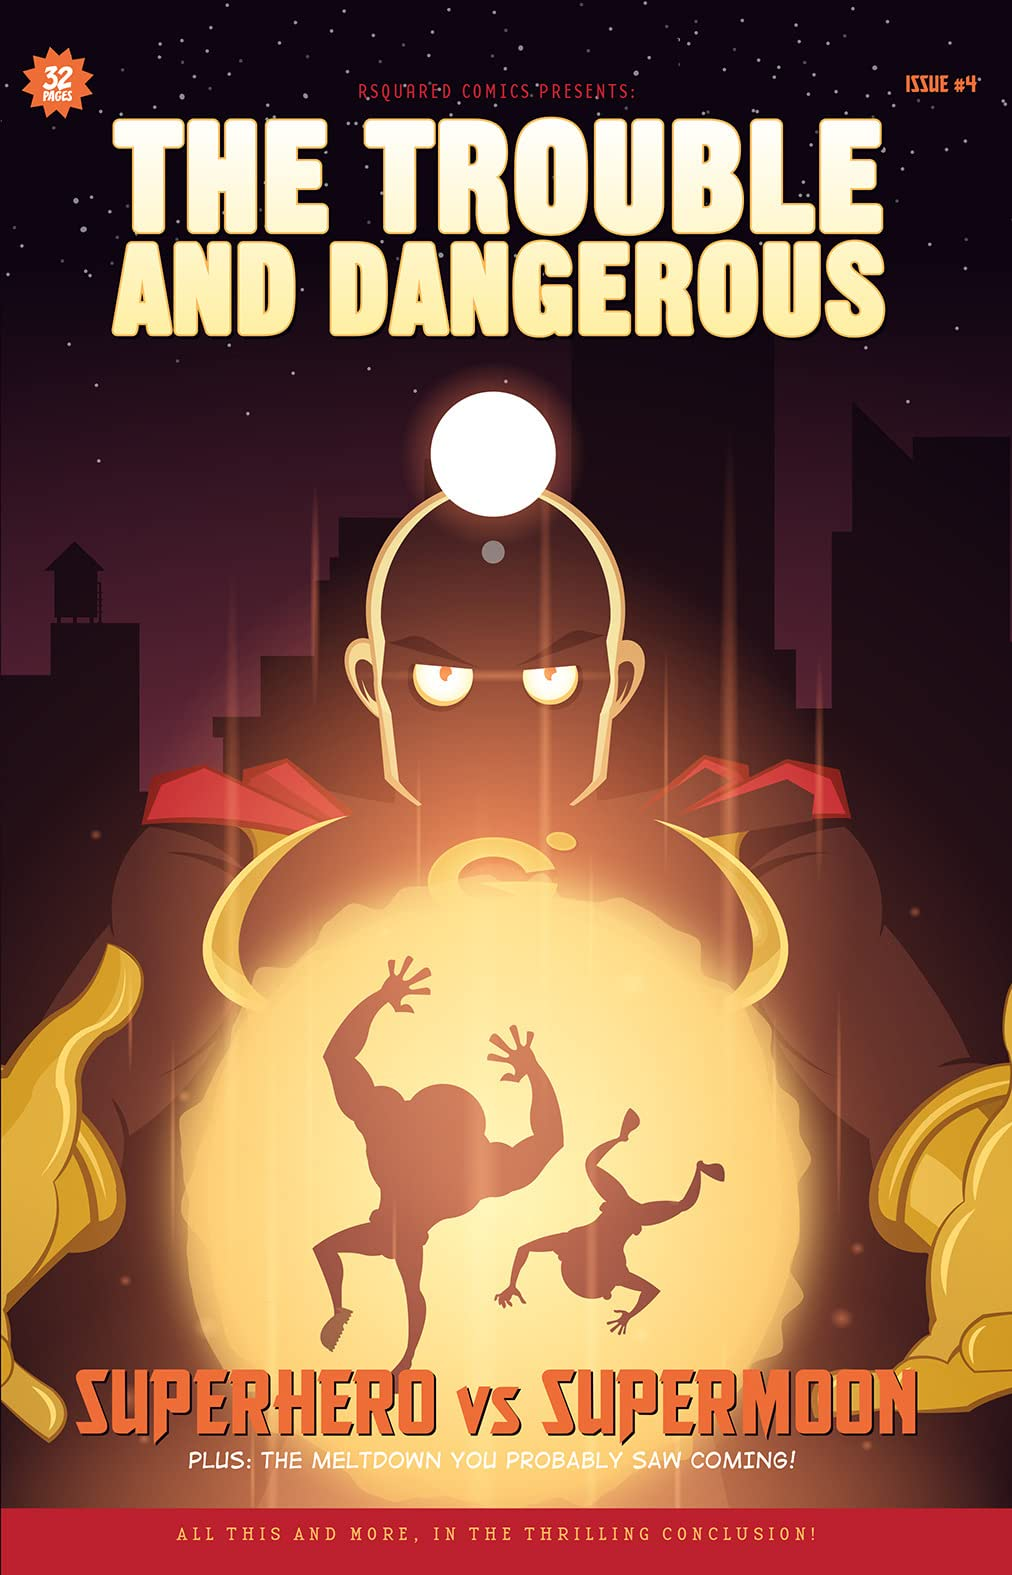 The Trouble and Dangerous #4